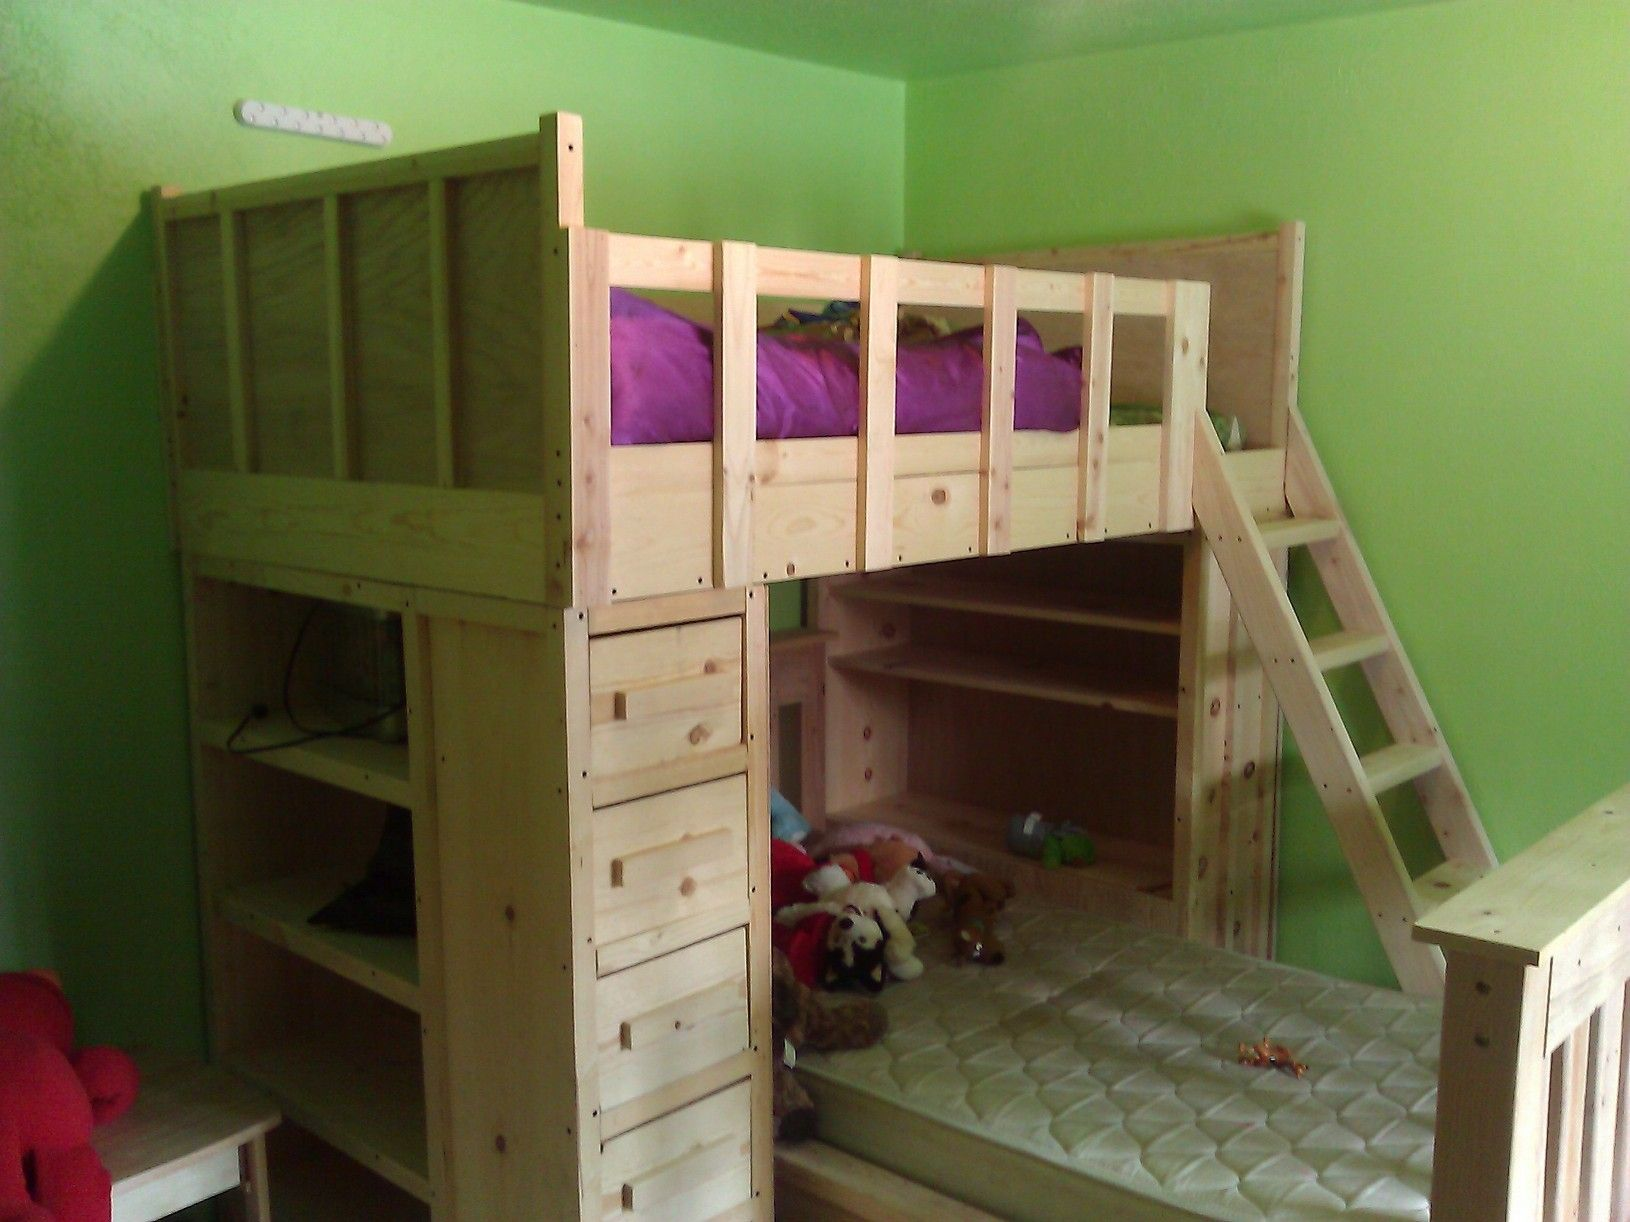 cabin bunk beds do it yourself home projects from ana white decorating ideas dream home. Black Bedroom Furniture Sets. Home Design Ideas